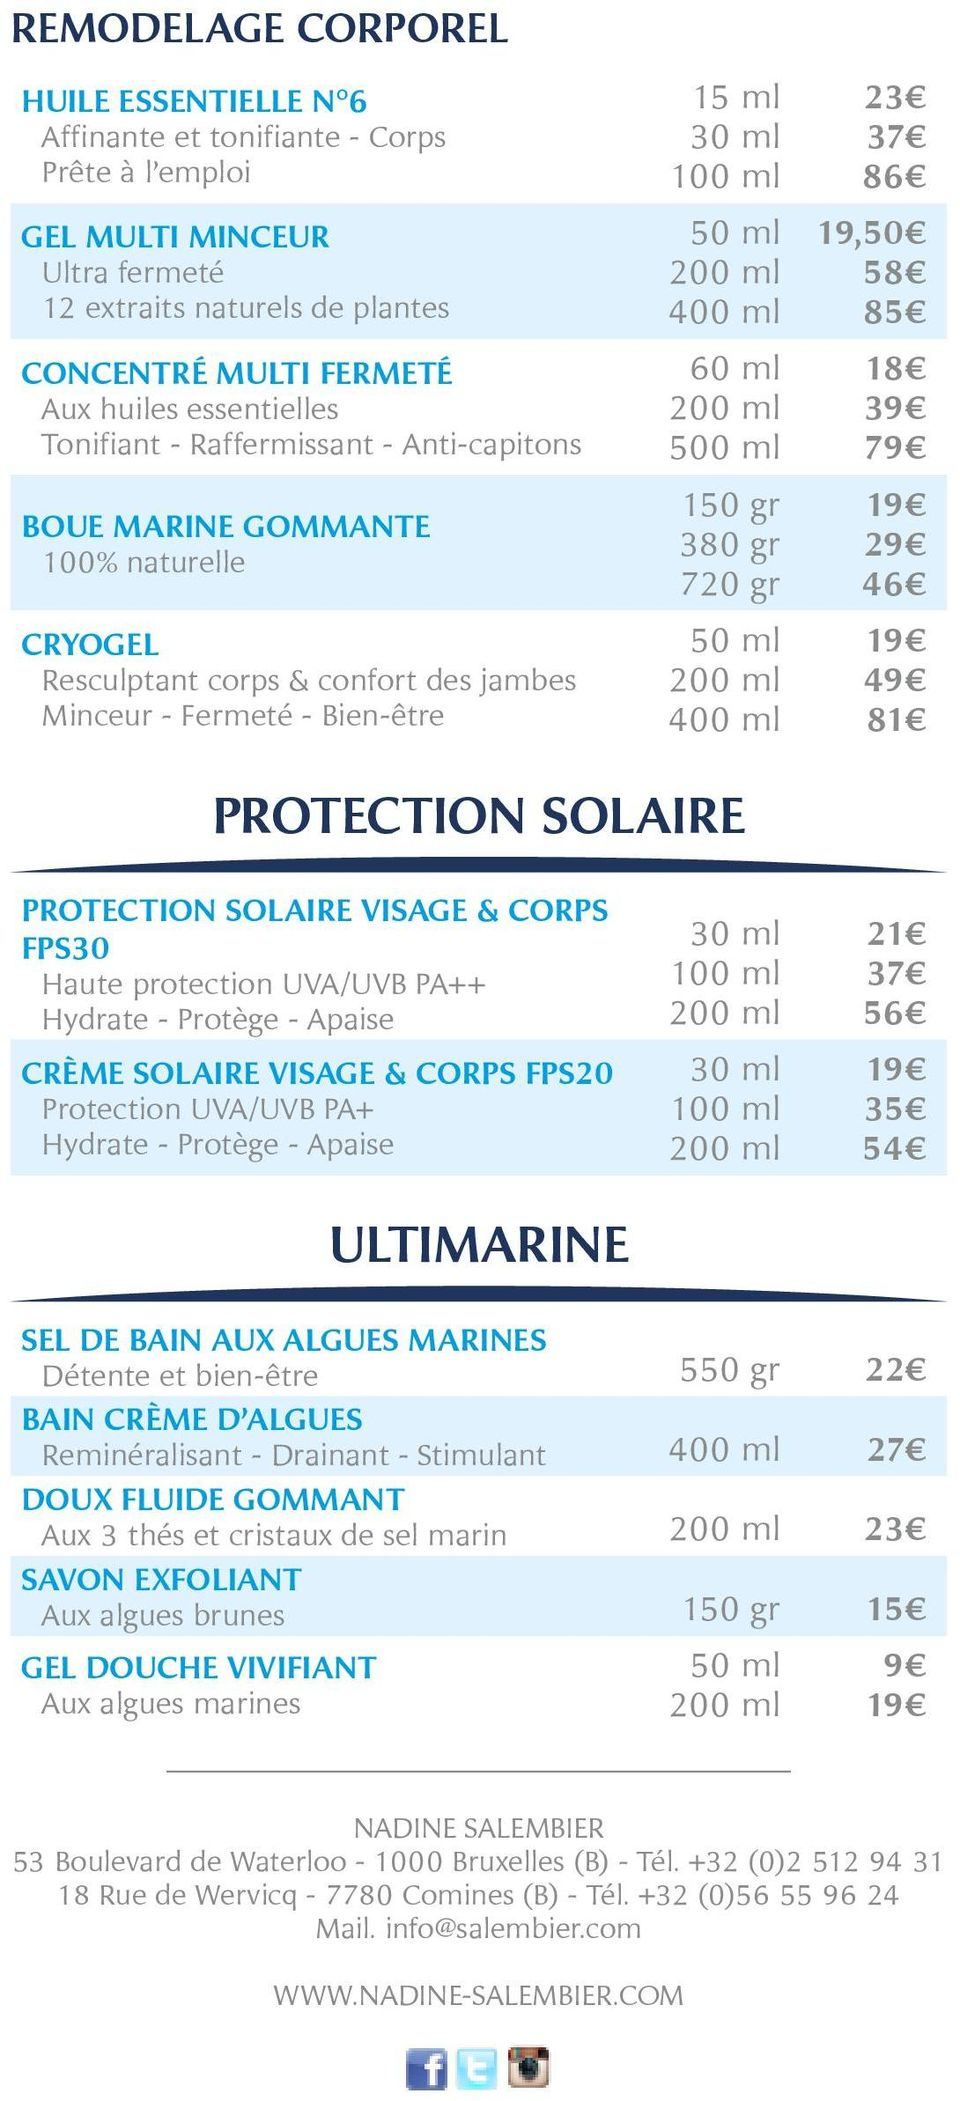 SOLAIRE PROTECTION SOLAIRE VISAGE & CORPS FPS30 Haute protection UVA/UVB PA++ Hydrate - Protège - Apaise CRÈME SOLAIRE VISAGE & CORPS FPS20 Protection UVA/UVB PA+ Hydrate - Protège - Apaise